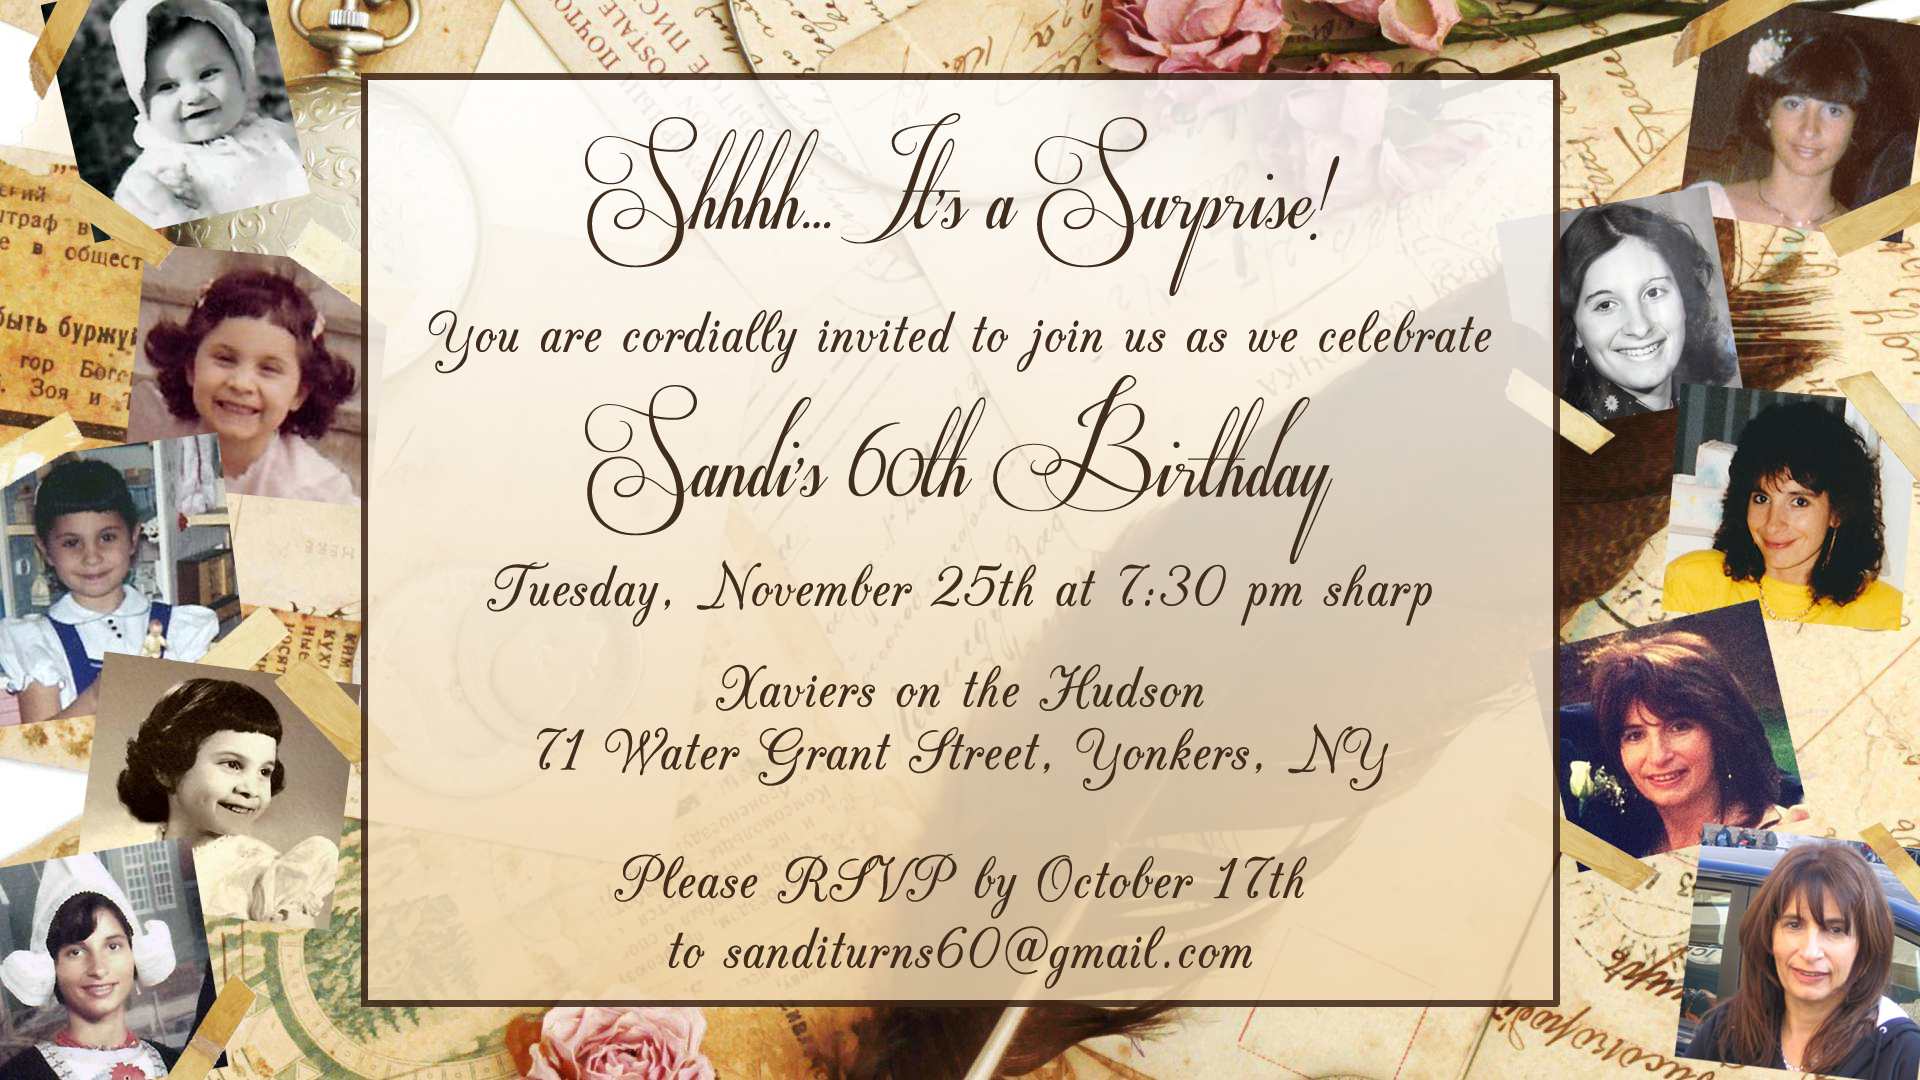 INVITATION TO SURPRISE 60TH BIRTHDAY PARTY